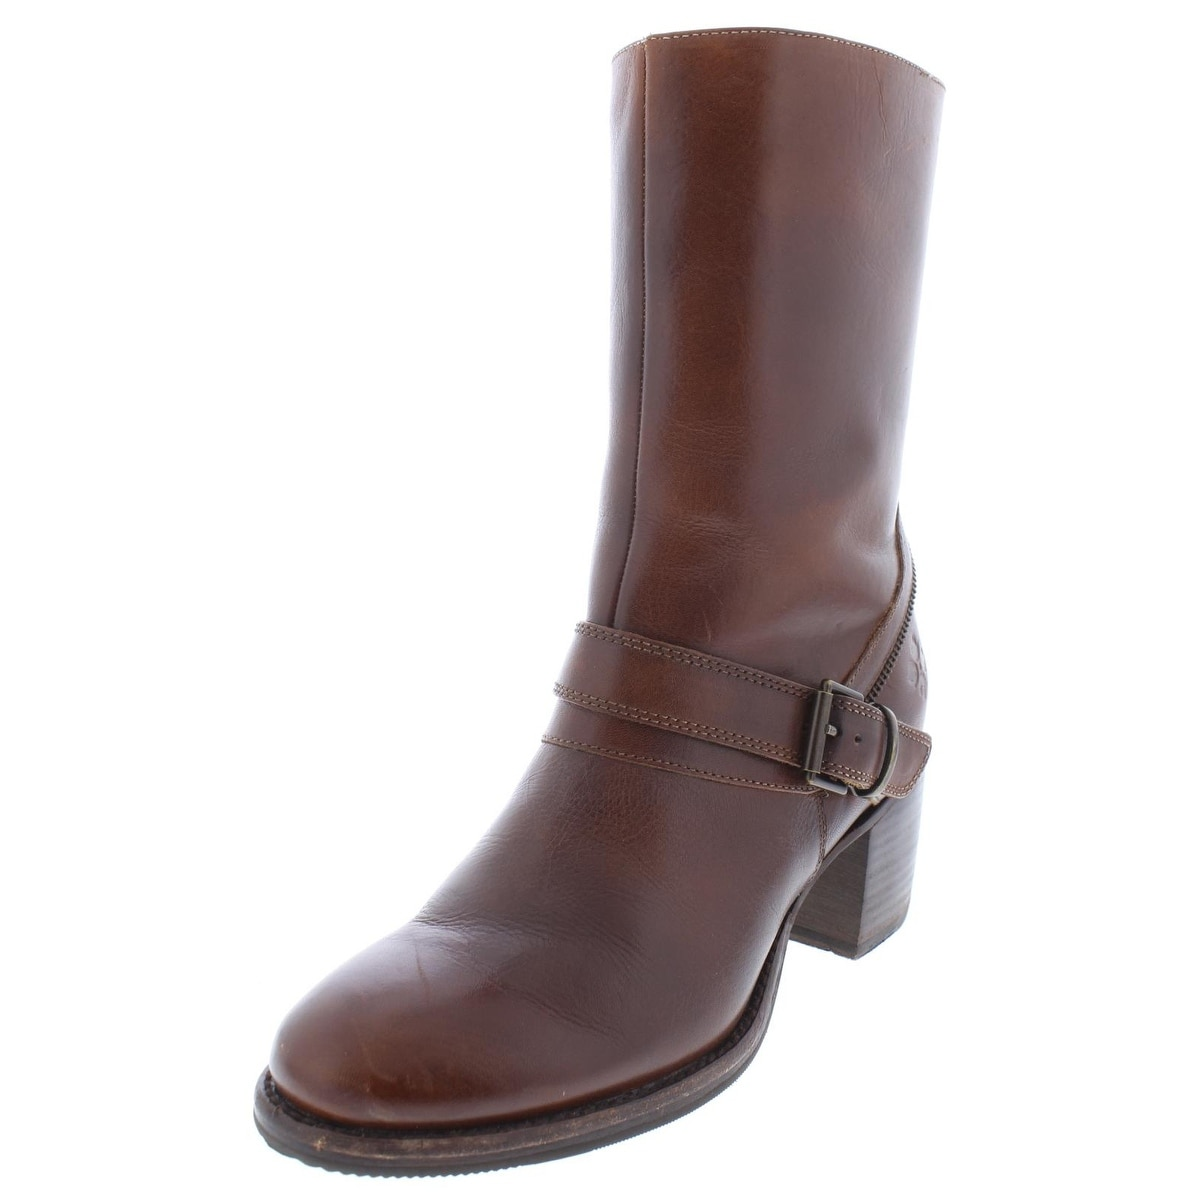 dbda59b1801 Buy Patricia Nash Women's Boots Online at Overstock | Our Best ...